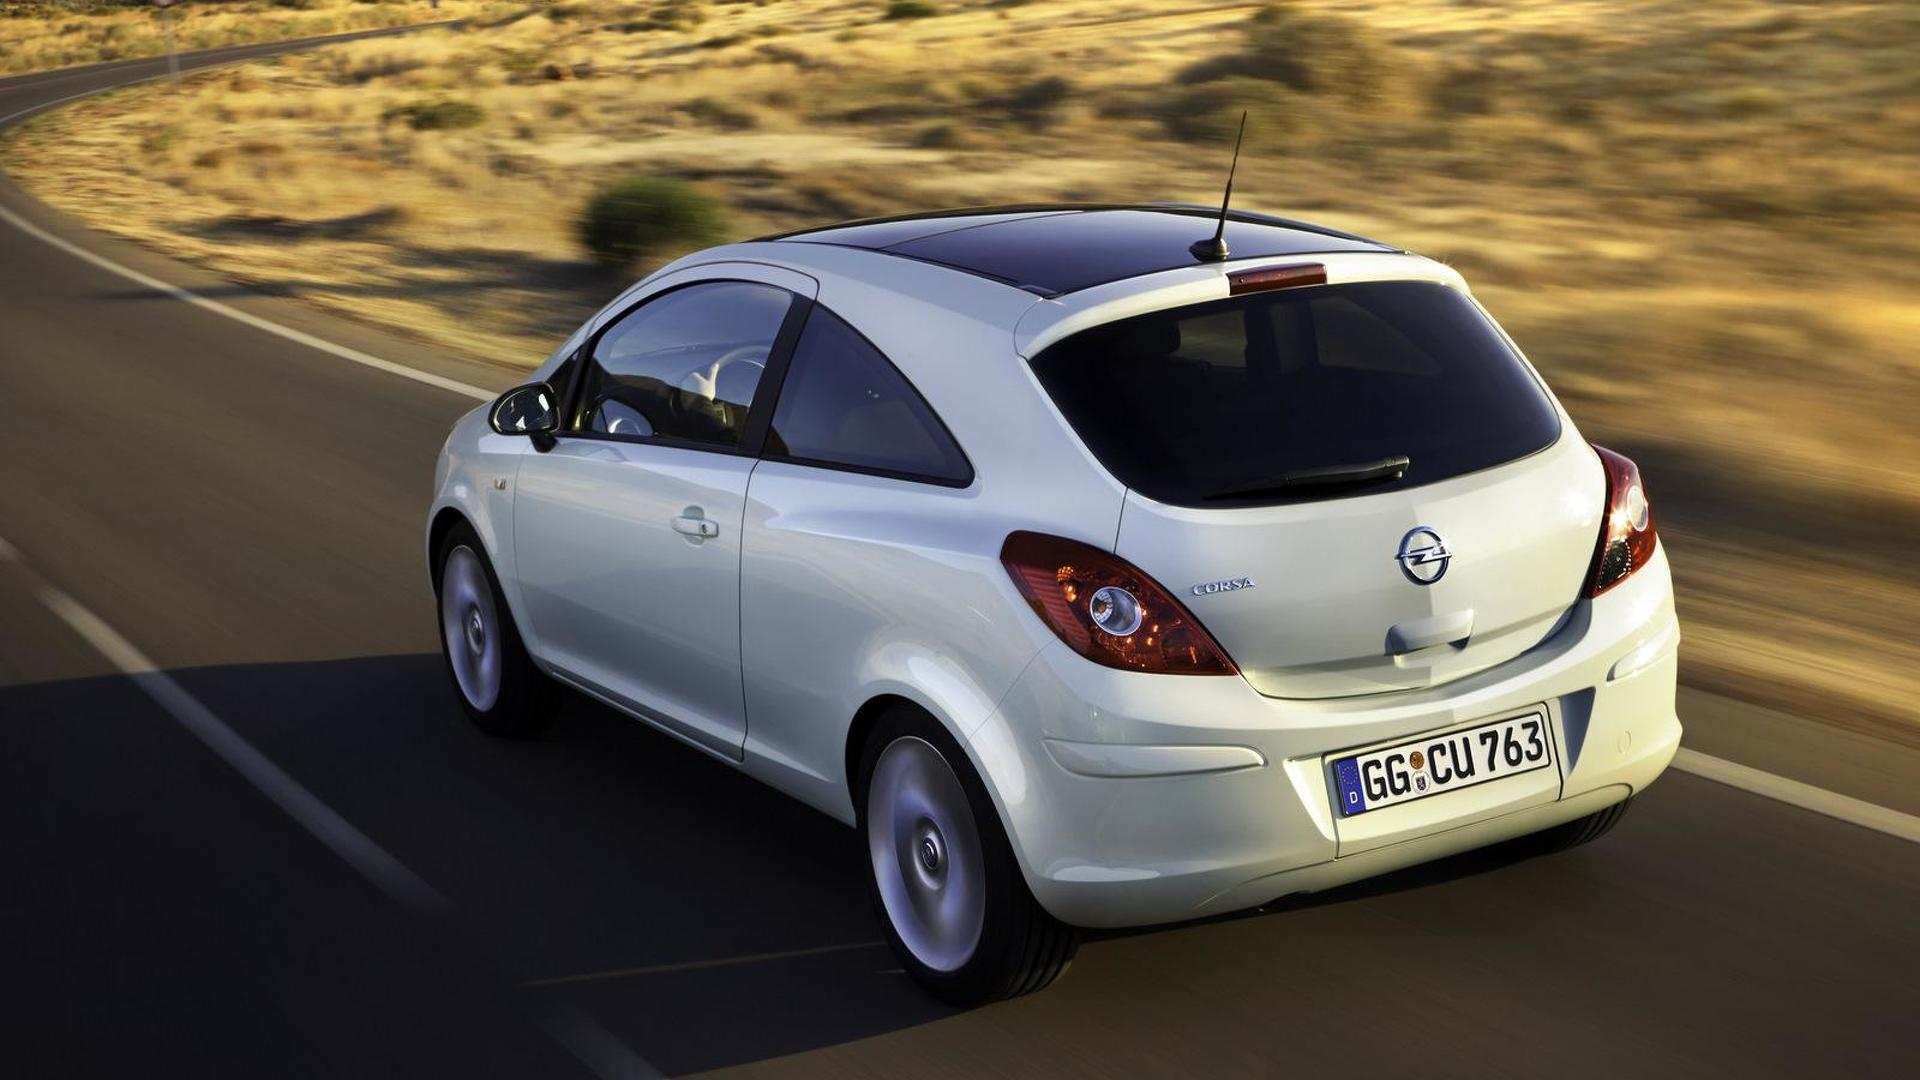 Opel Corsa 2010: beauty and style 57